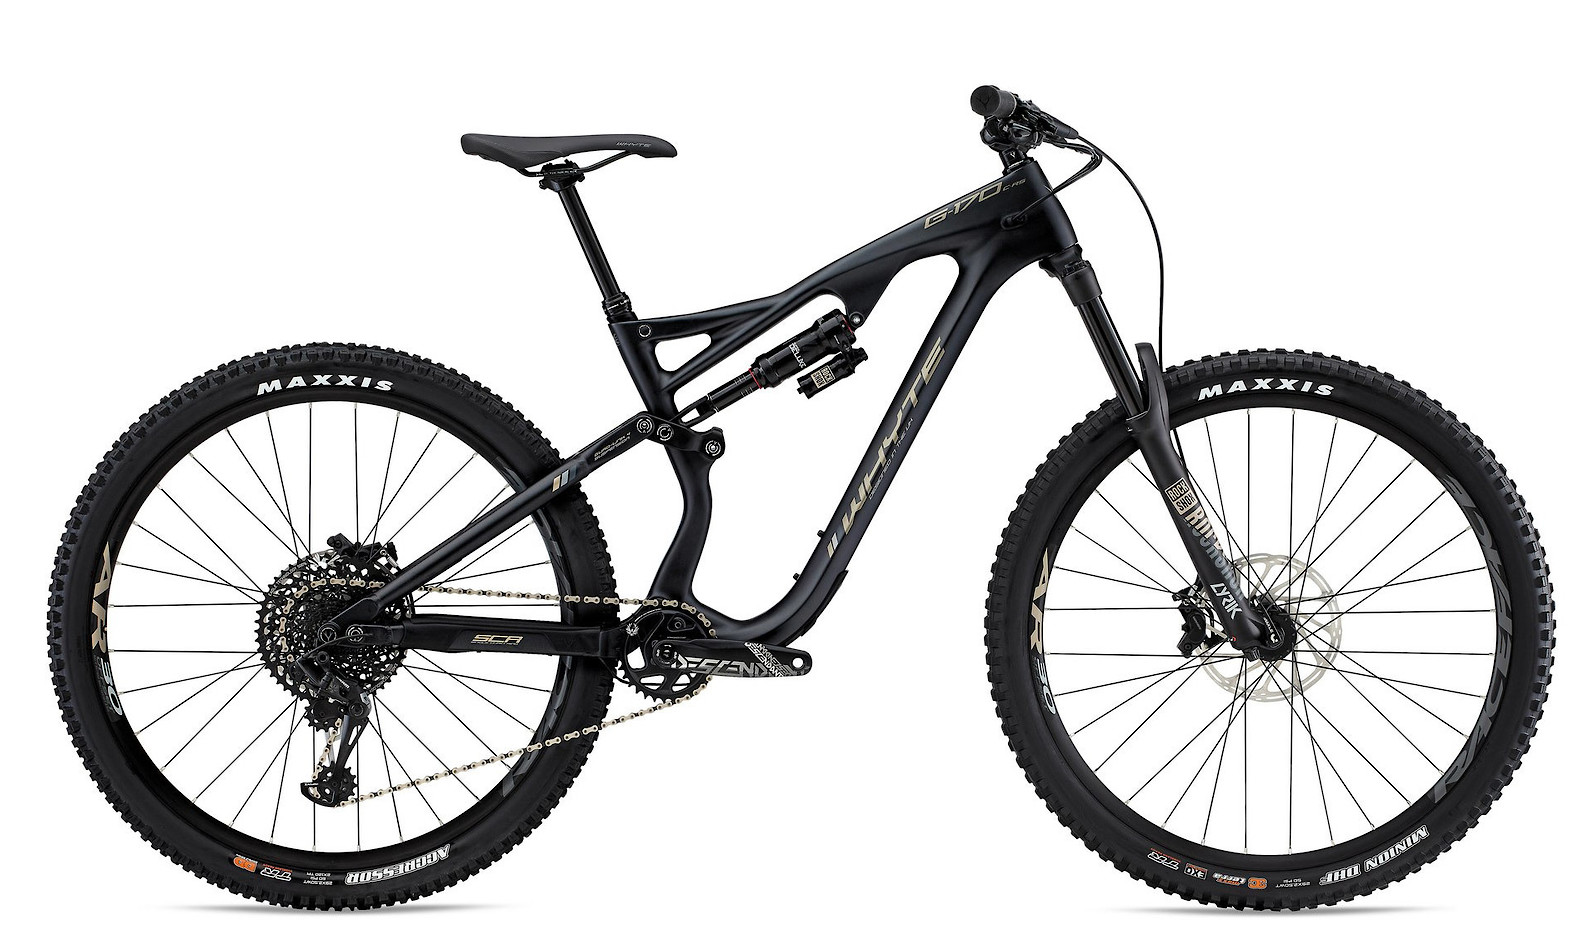 2019 Whyte G-170C RS 29 Bike